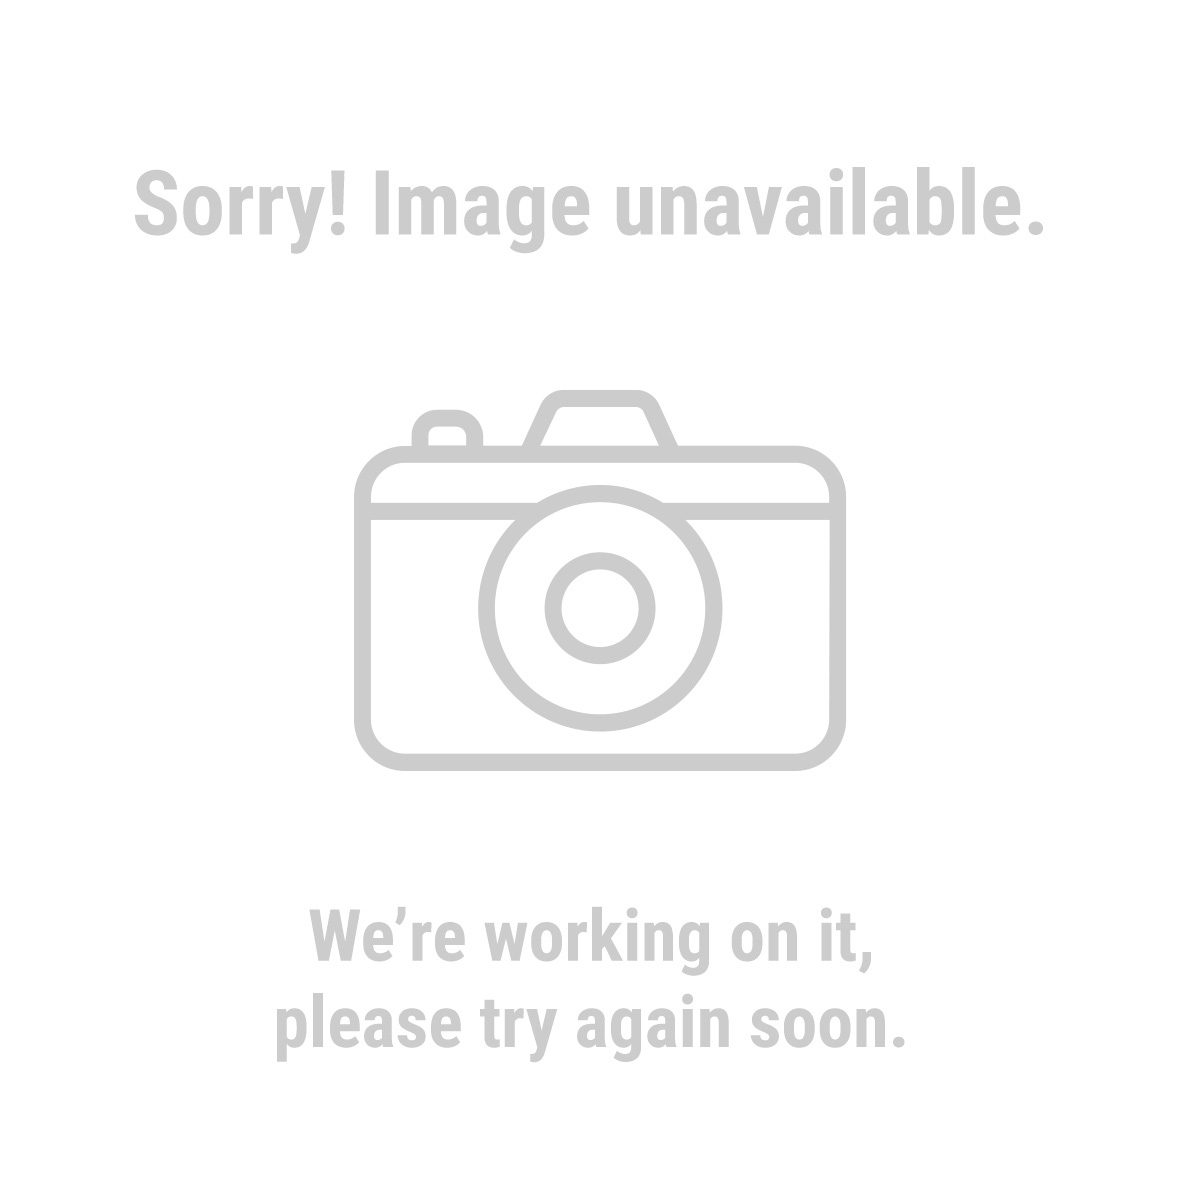 Lb Badland Winch Wire Diagram On 6000 Lb Badland Winch Wiring Diagram